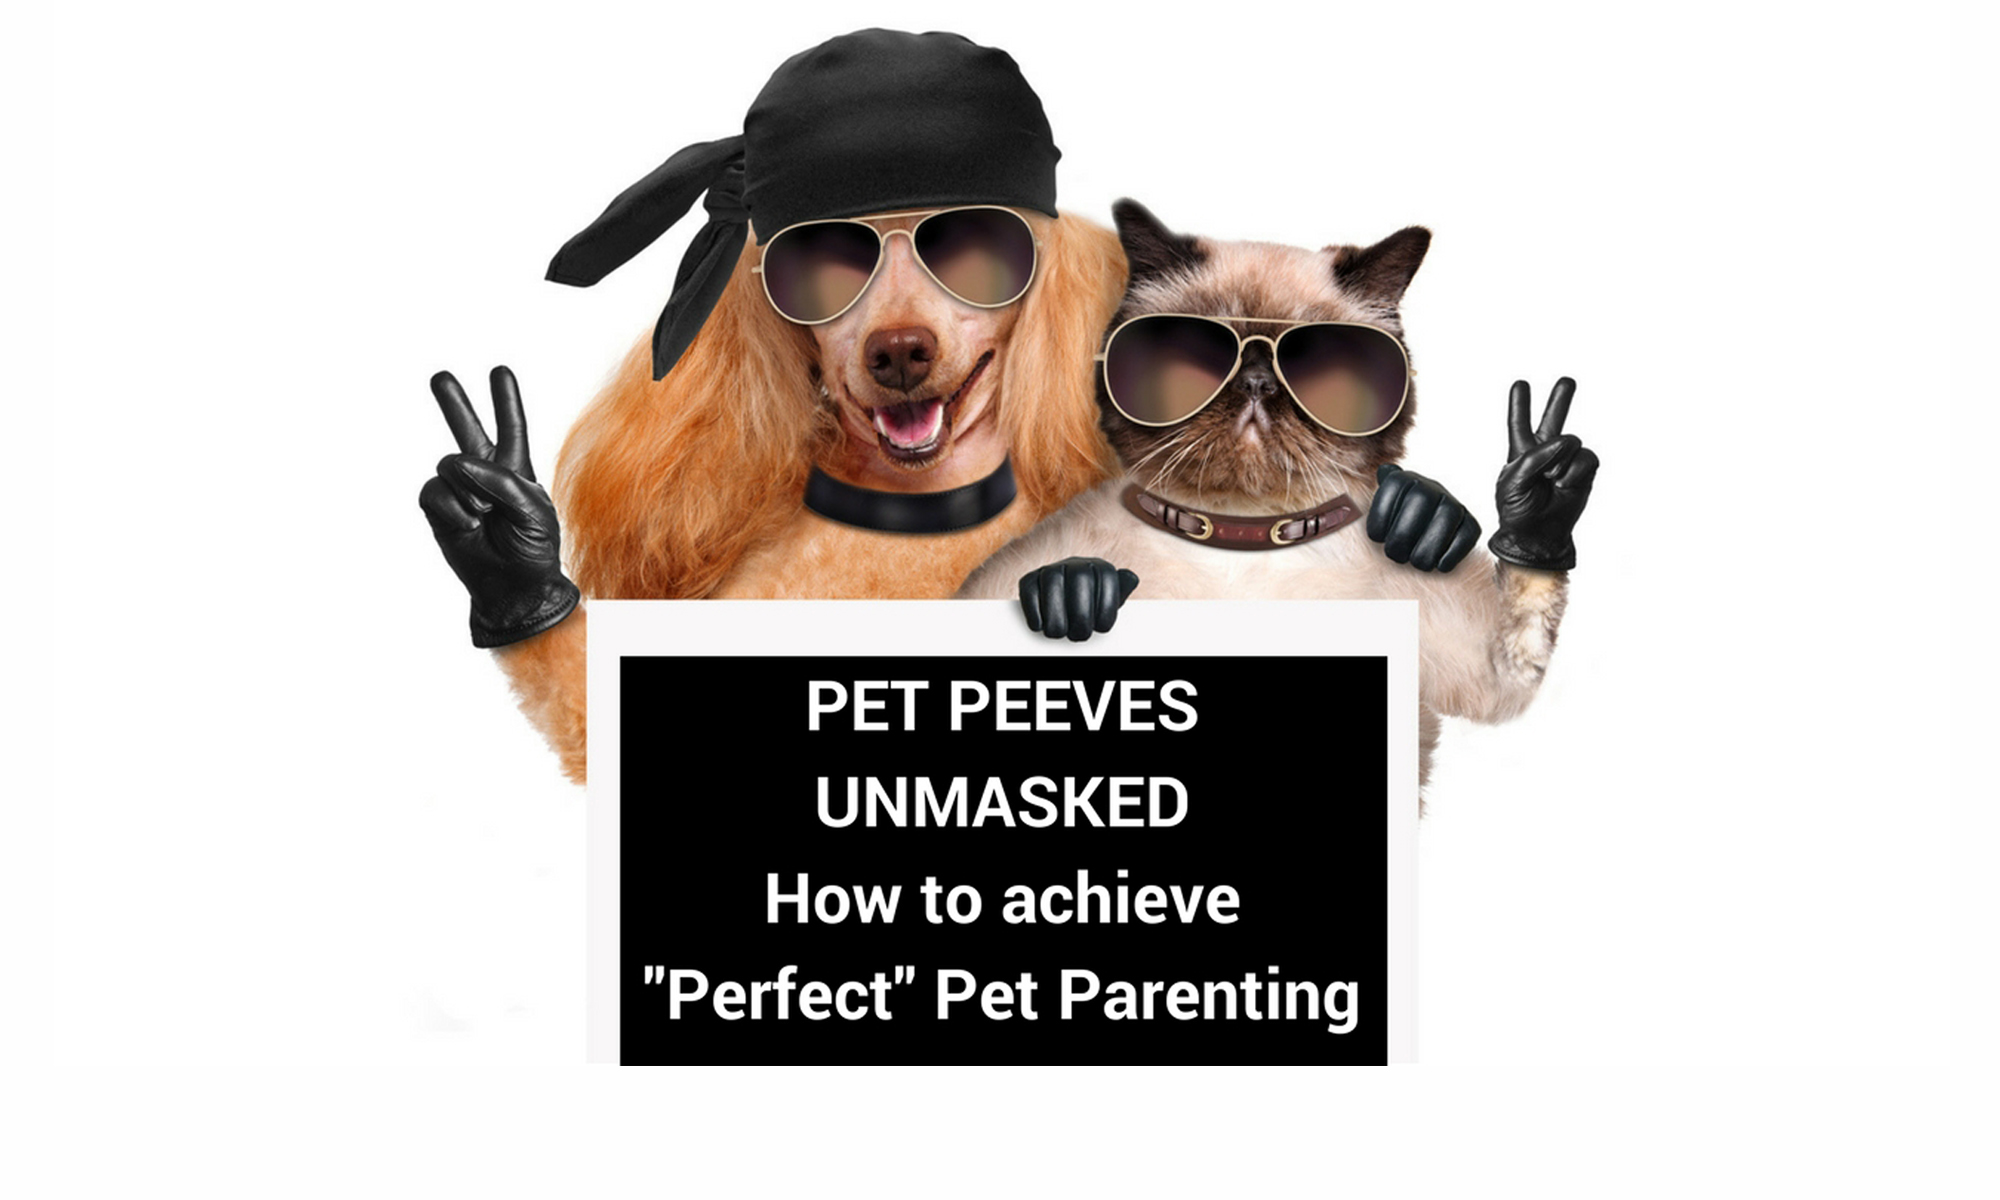 Pet Peeves Unmasked is a blog about caring for dogs and cats featuring an expert's pet topics and pet peeves